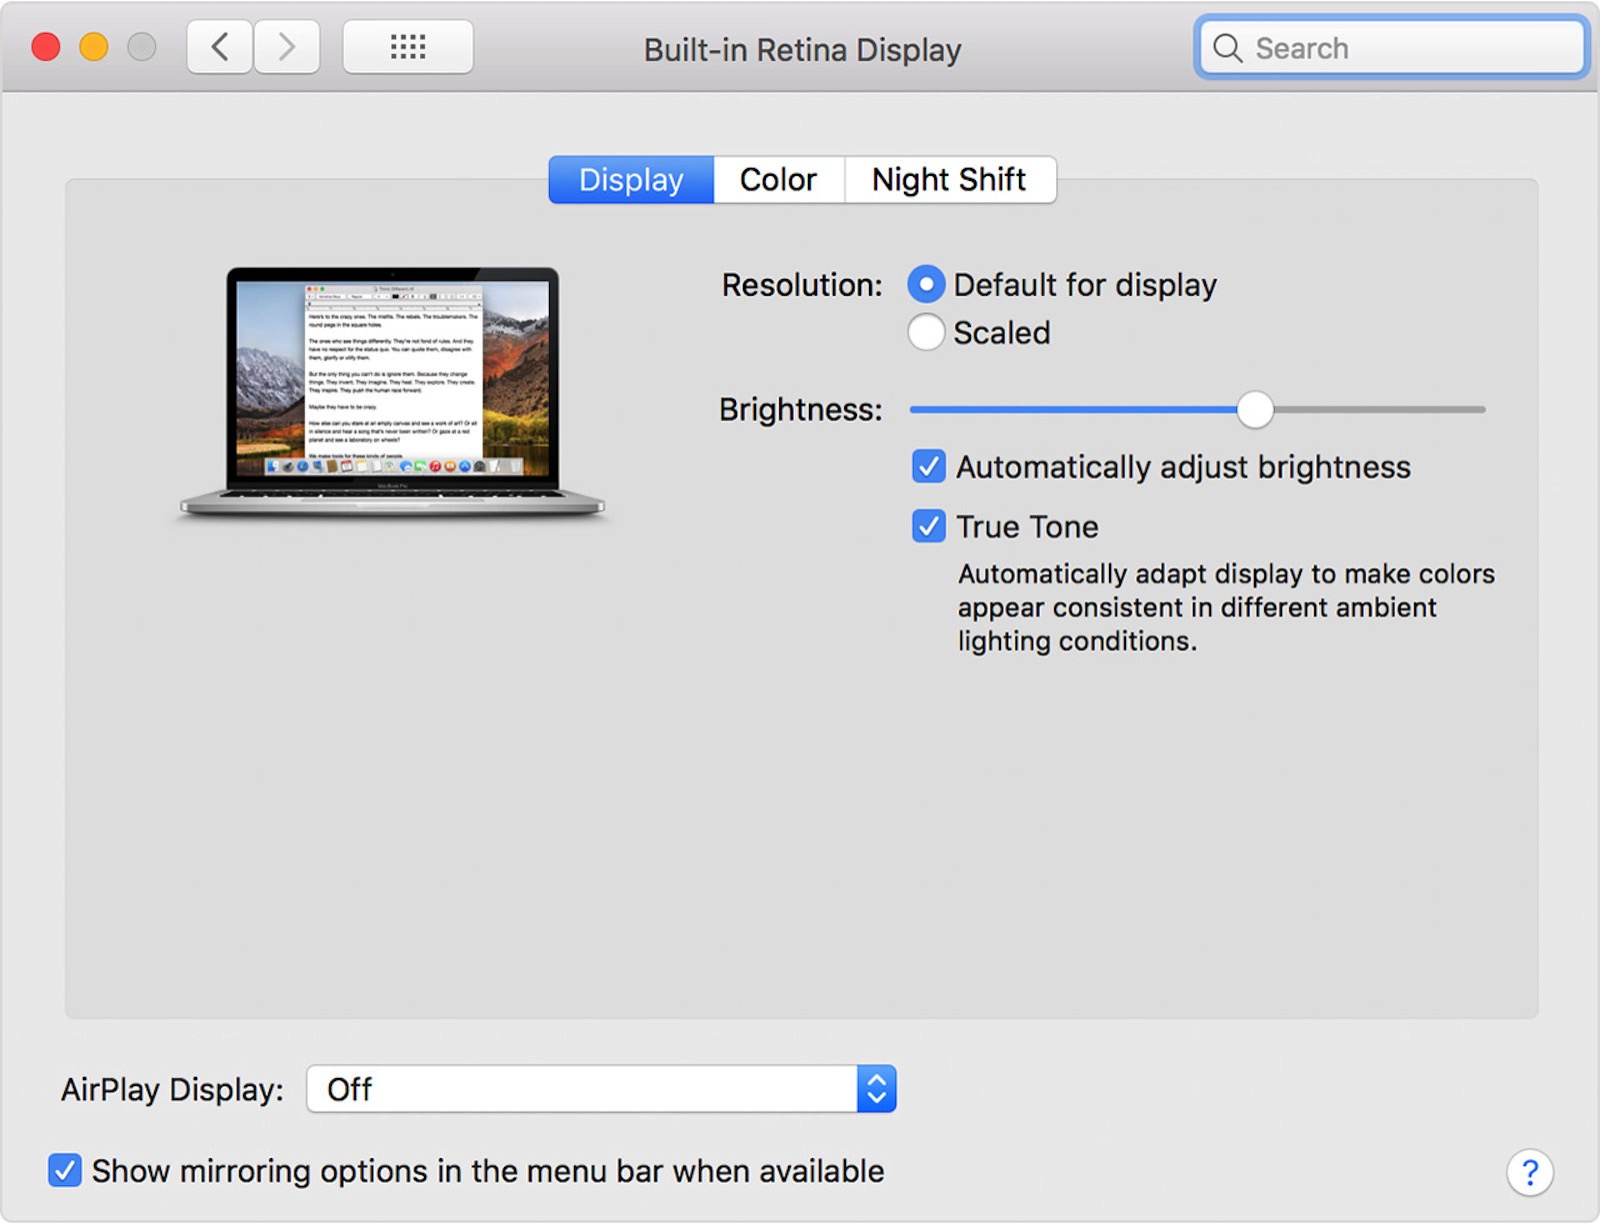 Macos macbook pro system preferences built in retina display true tone